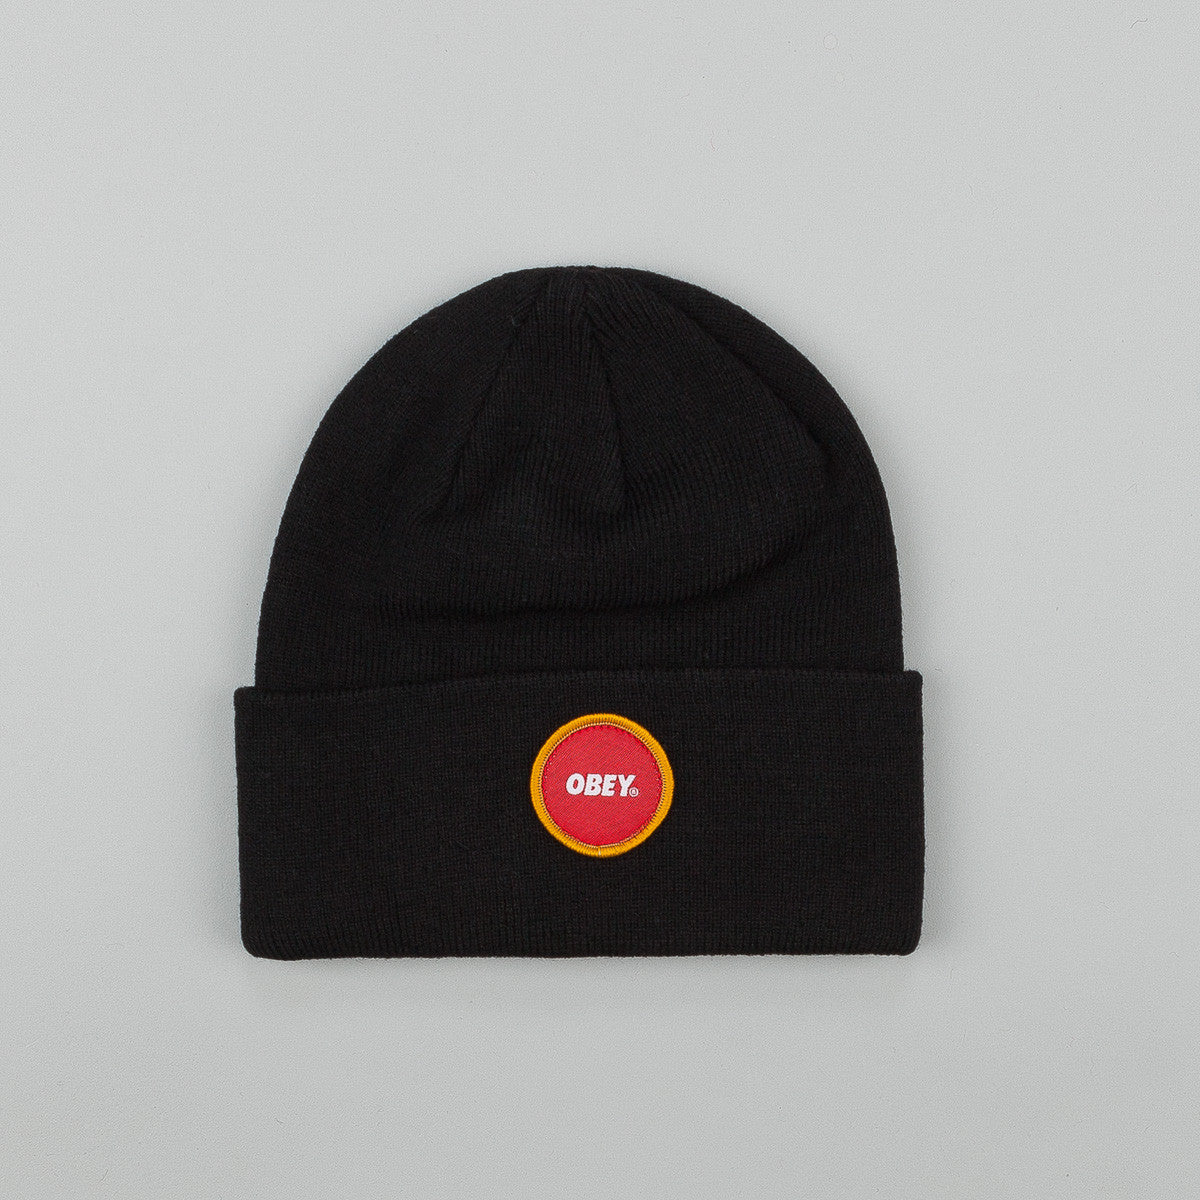 Obey Circle patch Beanie Black